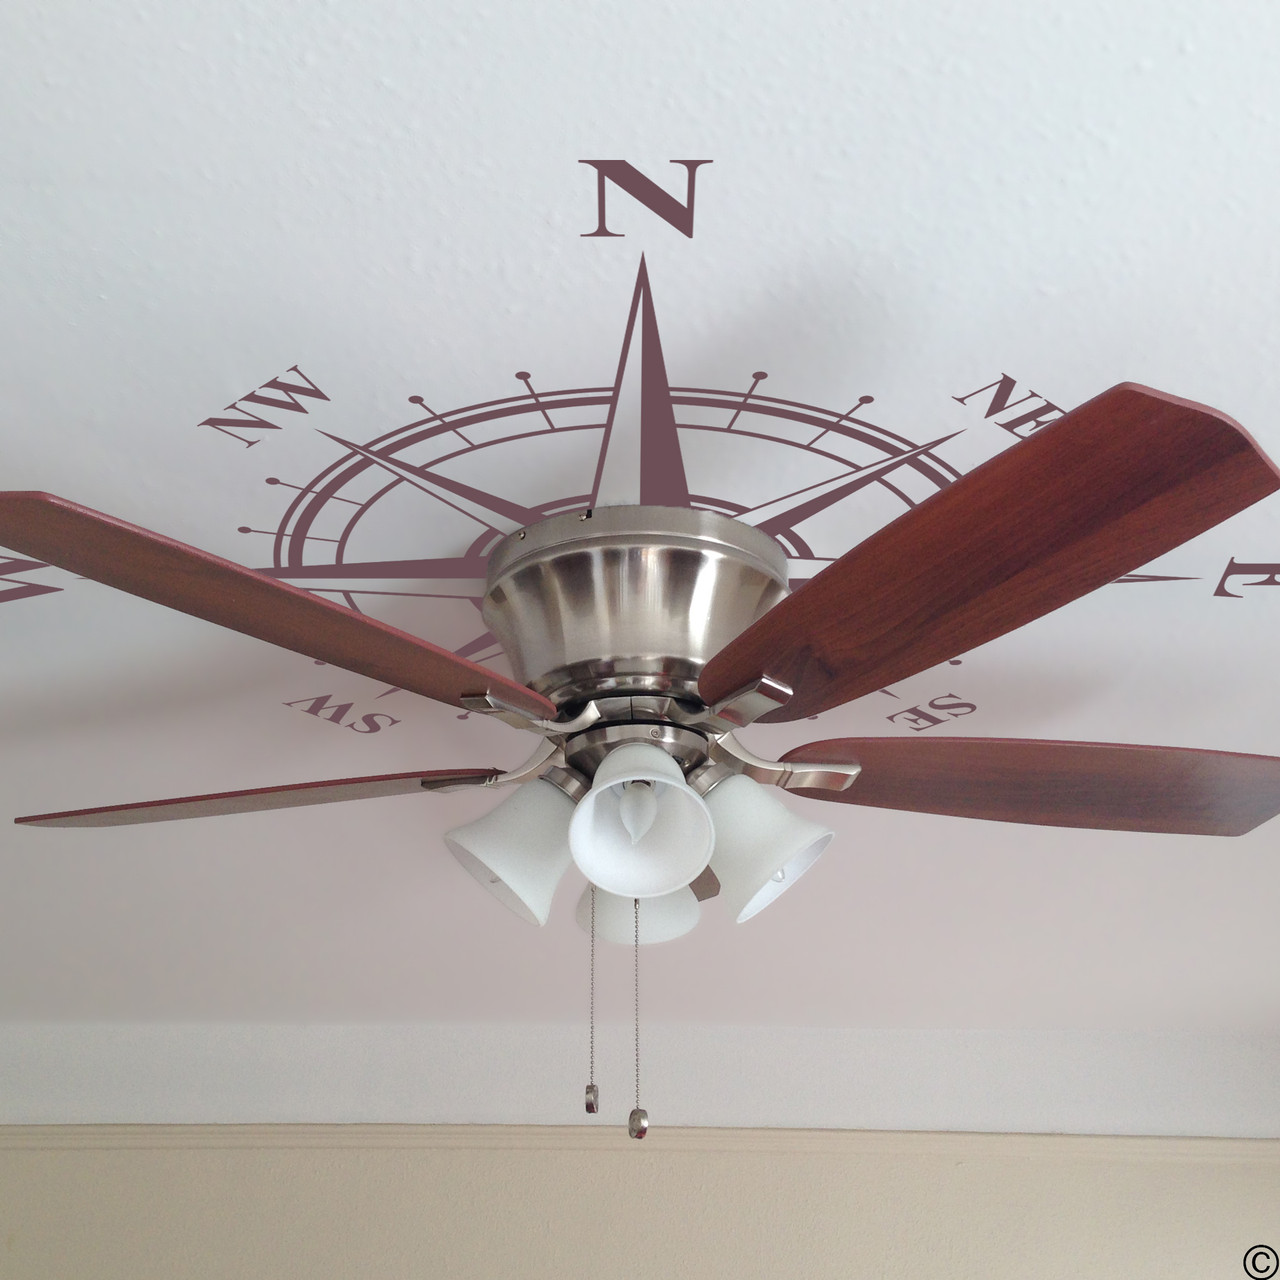 The Charles compass wall decal shown here on a ceiling and placed under a ceiling fan in limited edition eggplant vinyl.